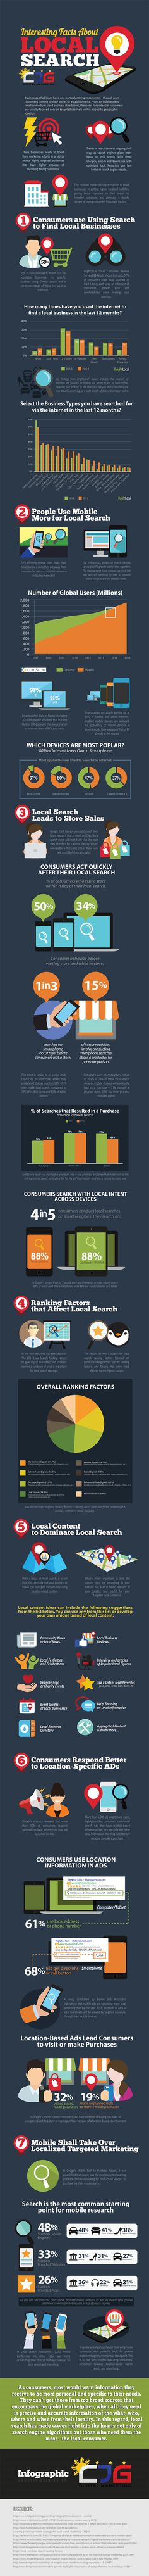 Interesting Facts about Local Search - Infographic - CJG Digital Marketing